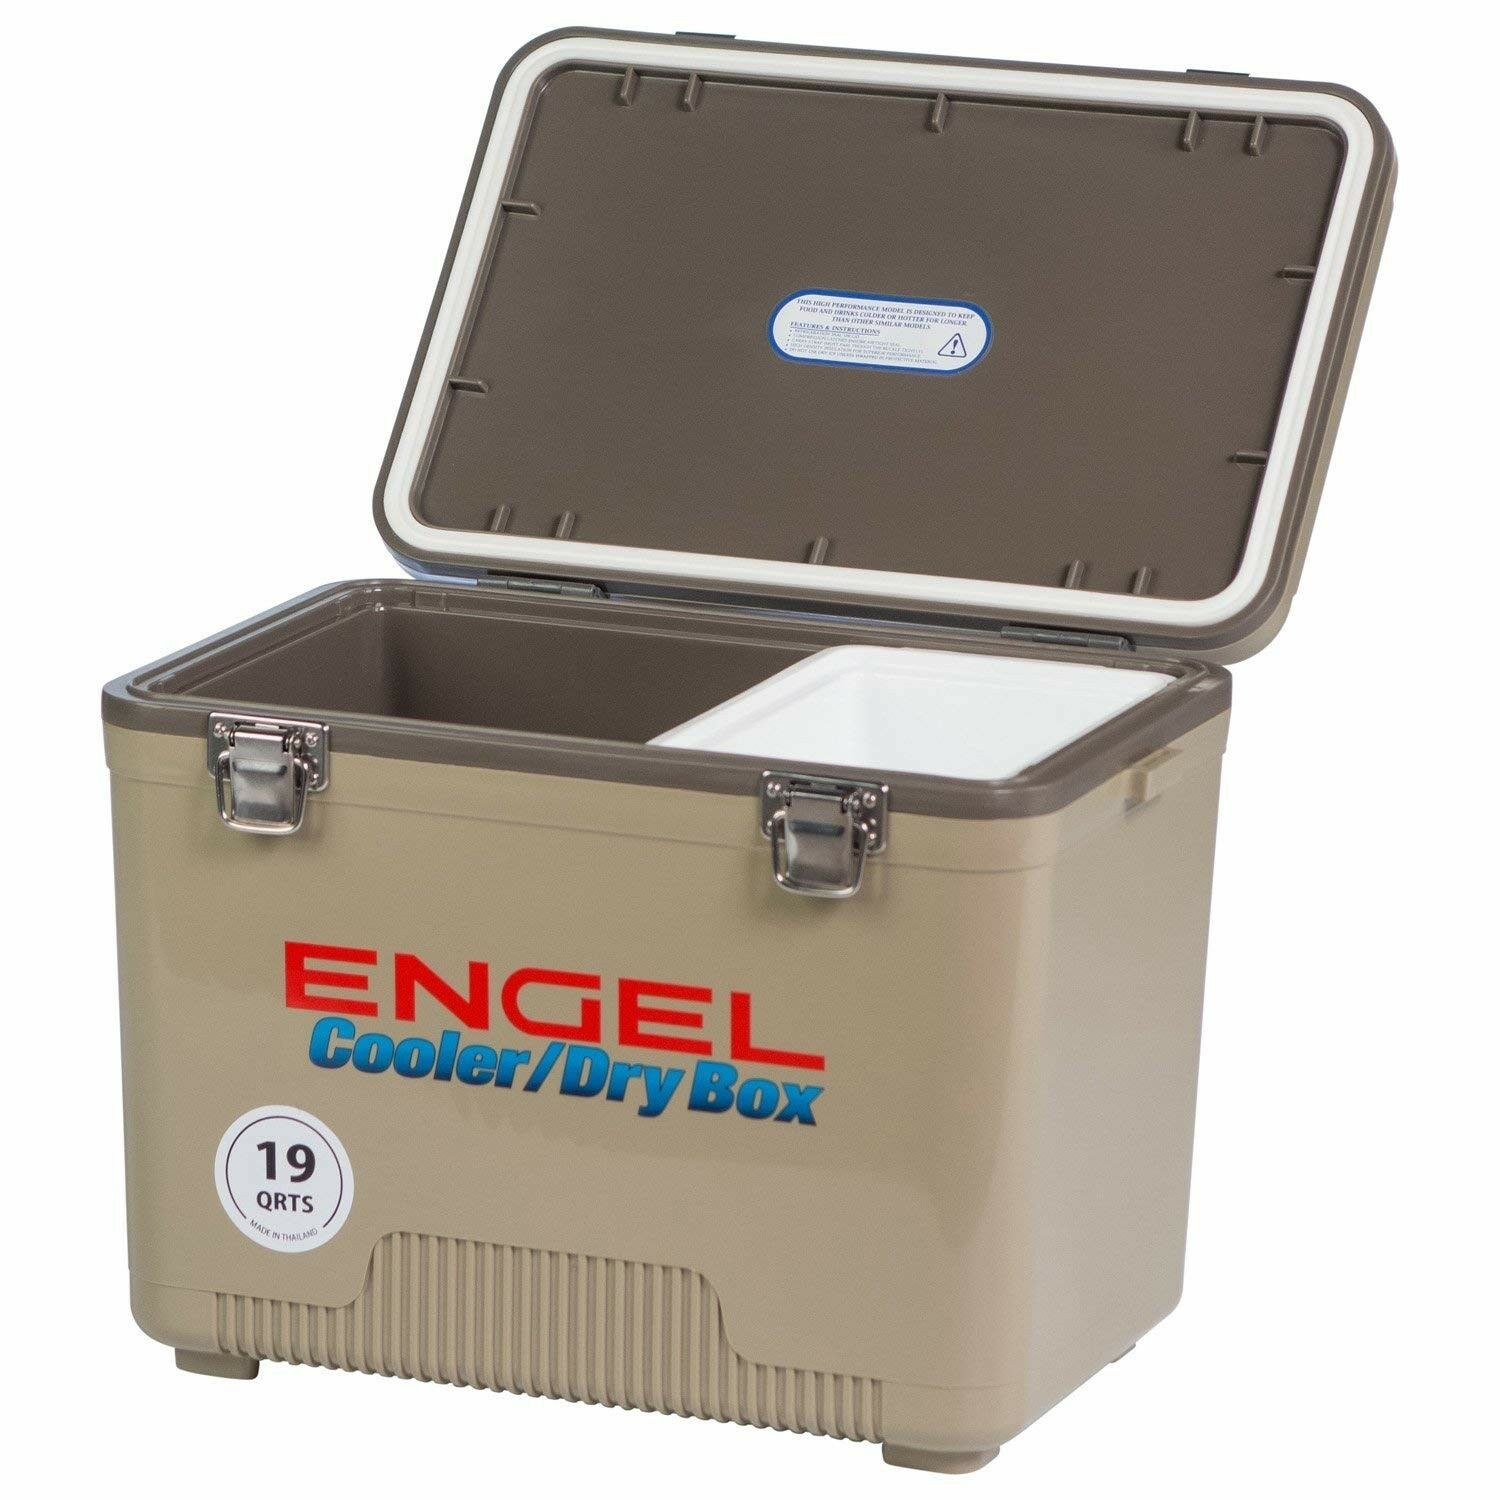 Engel Sturdy Cooler Dry Box - Excellent Lunch Box w  Secure Latches (19 Quart)